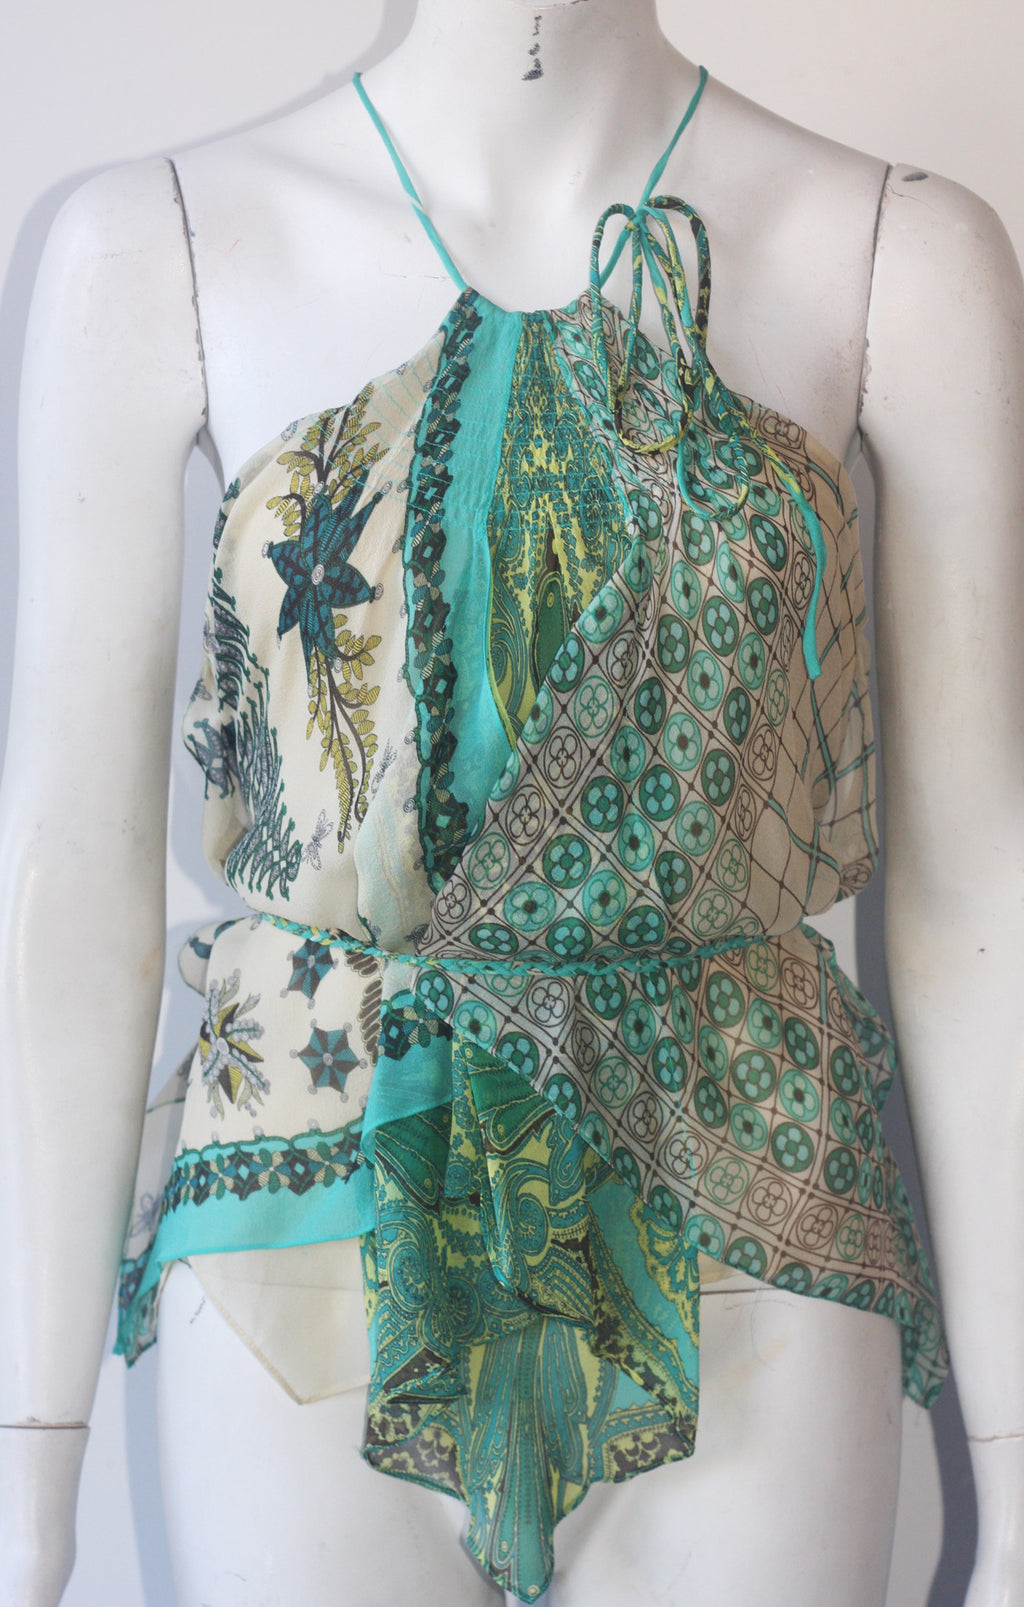 BCBG Max Azria Green & Blue Silk Sheer Layered Blouse - Joyce's Closet  - 1